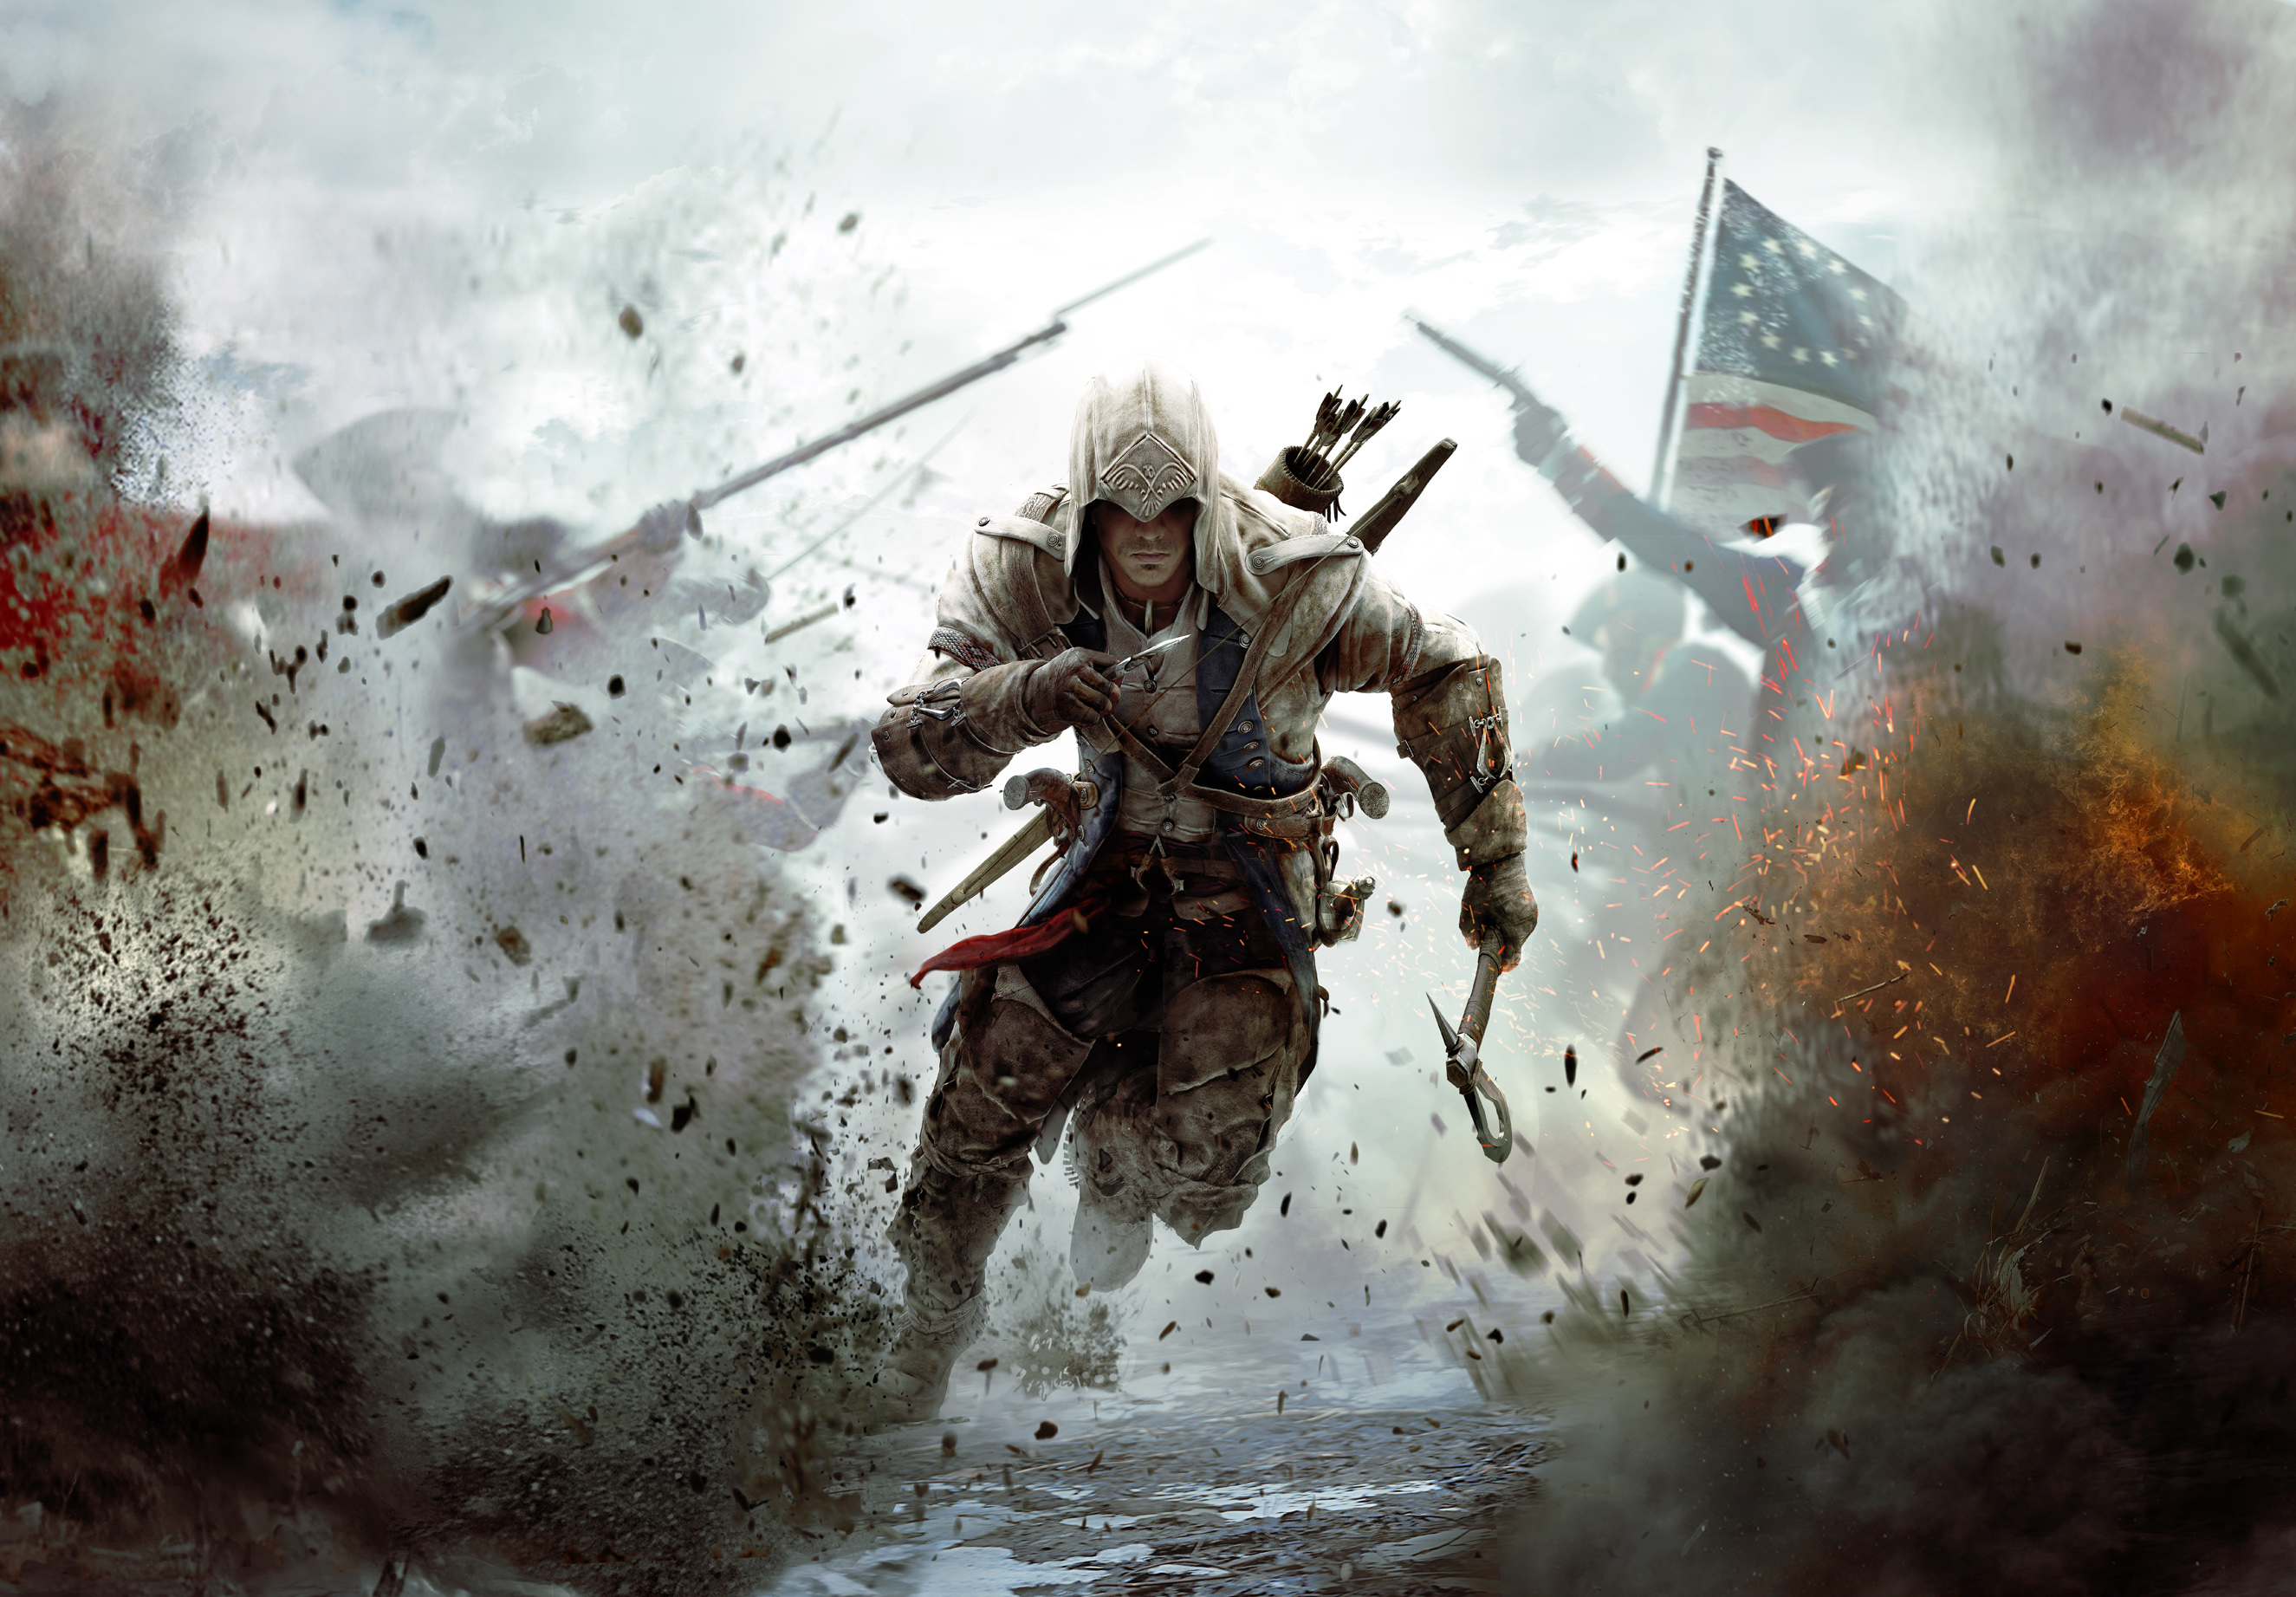 Assassins Creed Iii Connor Warrior Assassins Creed Iii